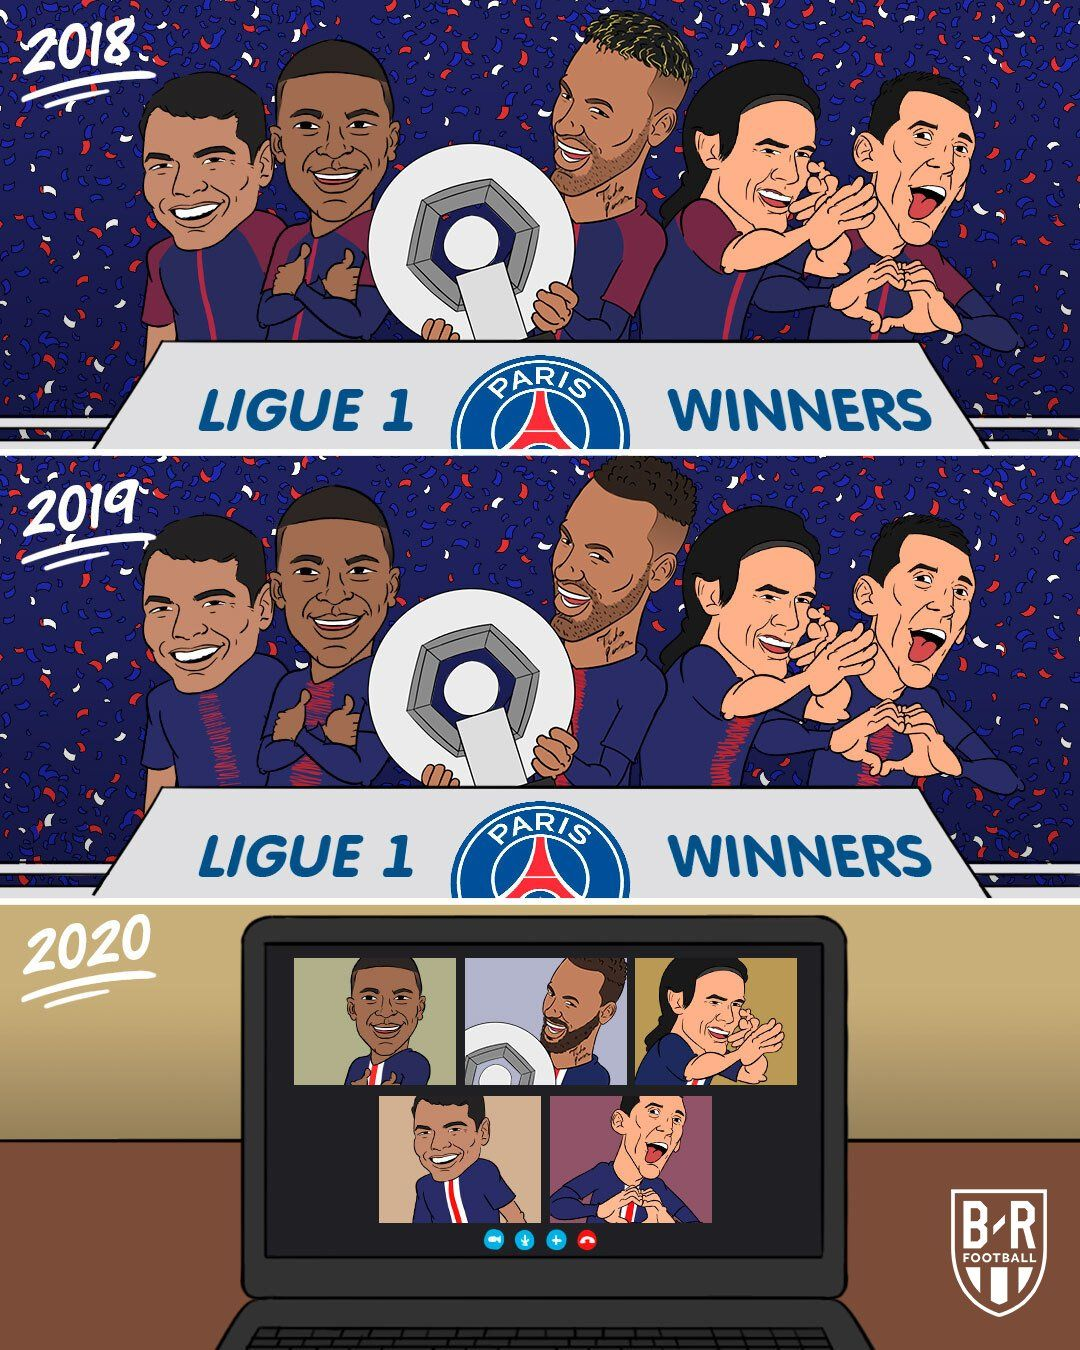 PSG are named French champions for the third year in a row